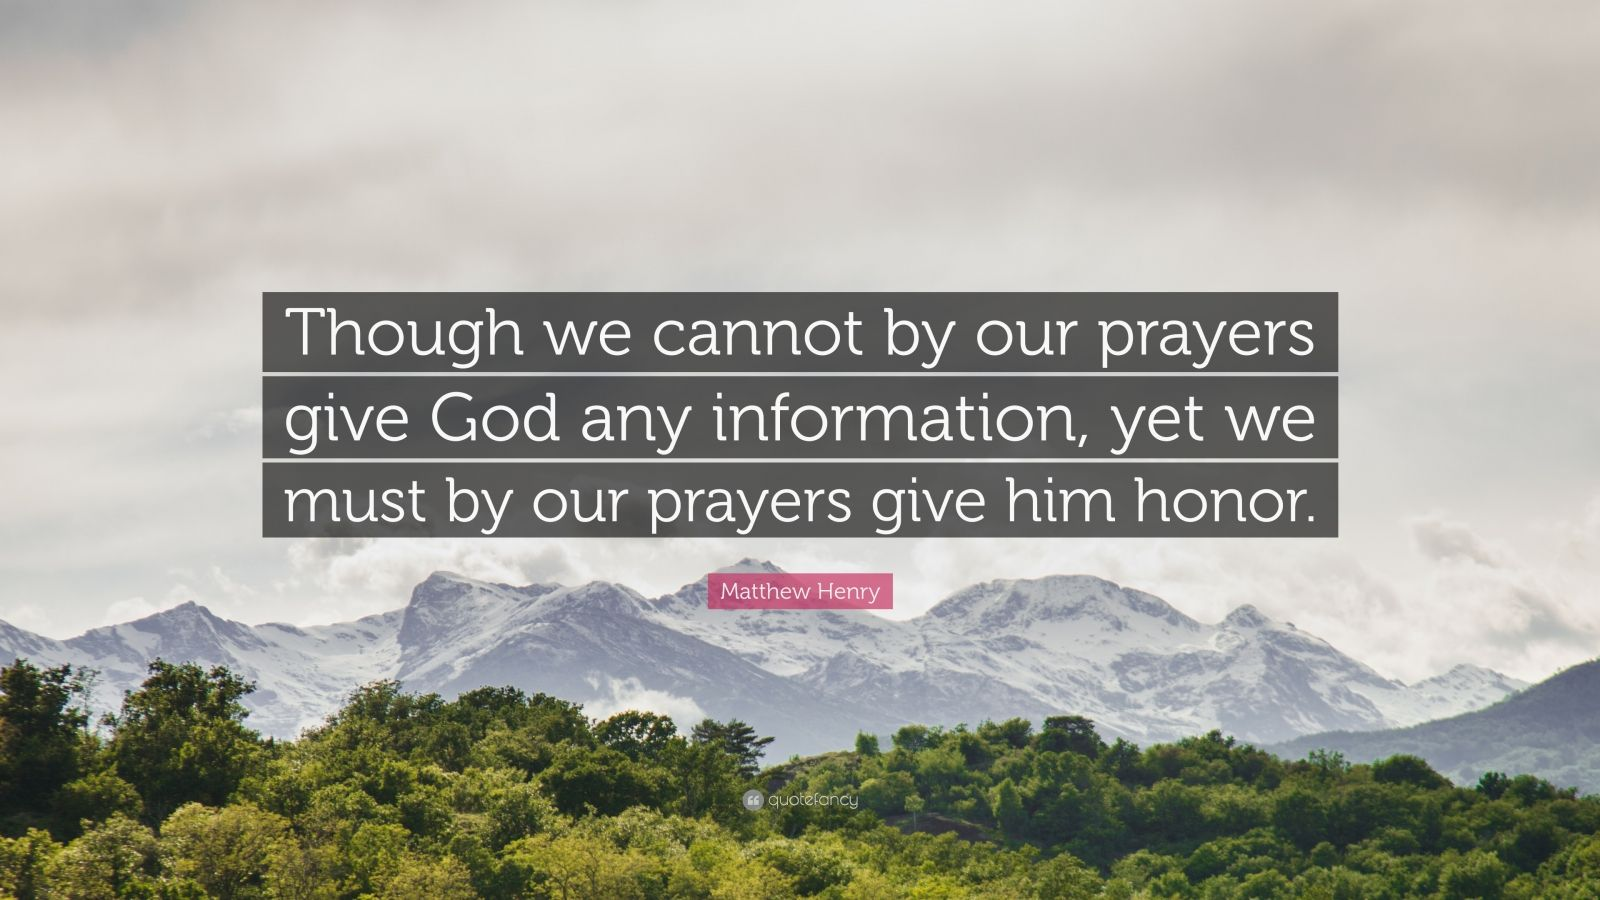 """Matthew Henry Quote: """"Though we cannot by our prayers give God any information, yet we must by our prayers give him honor."""""""